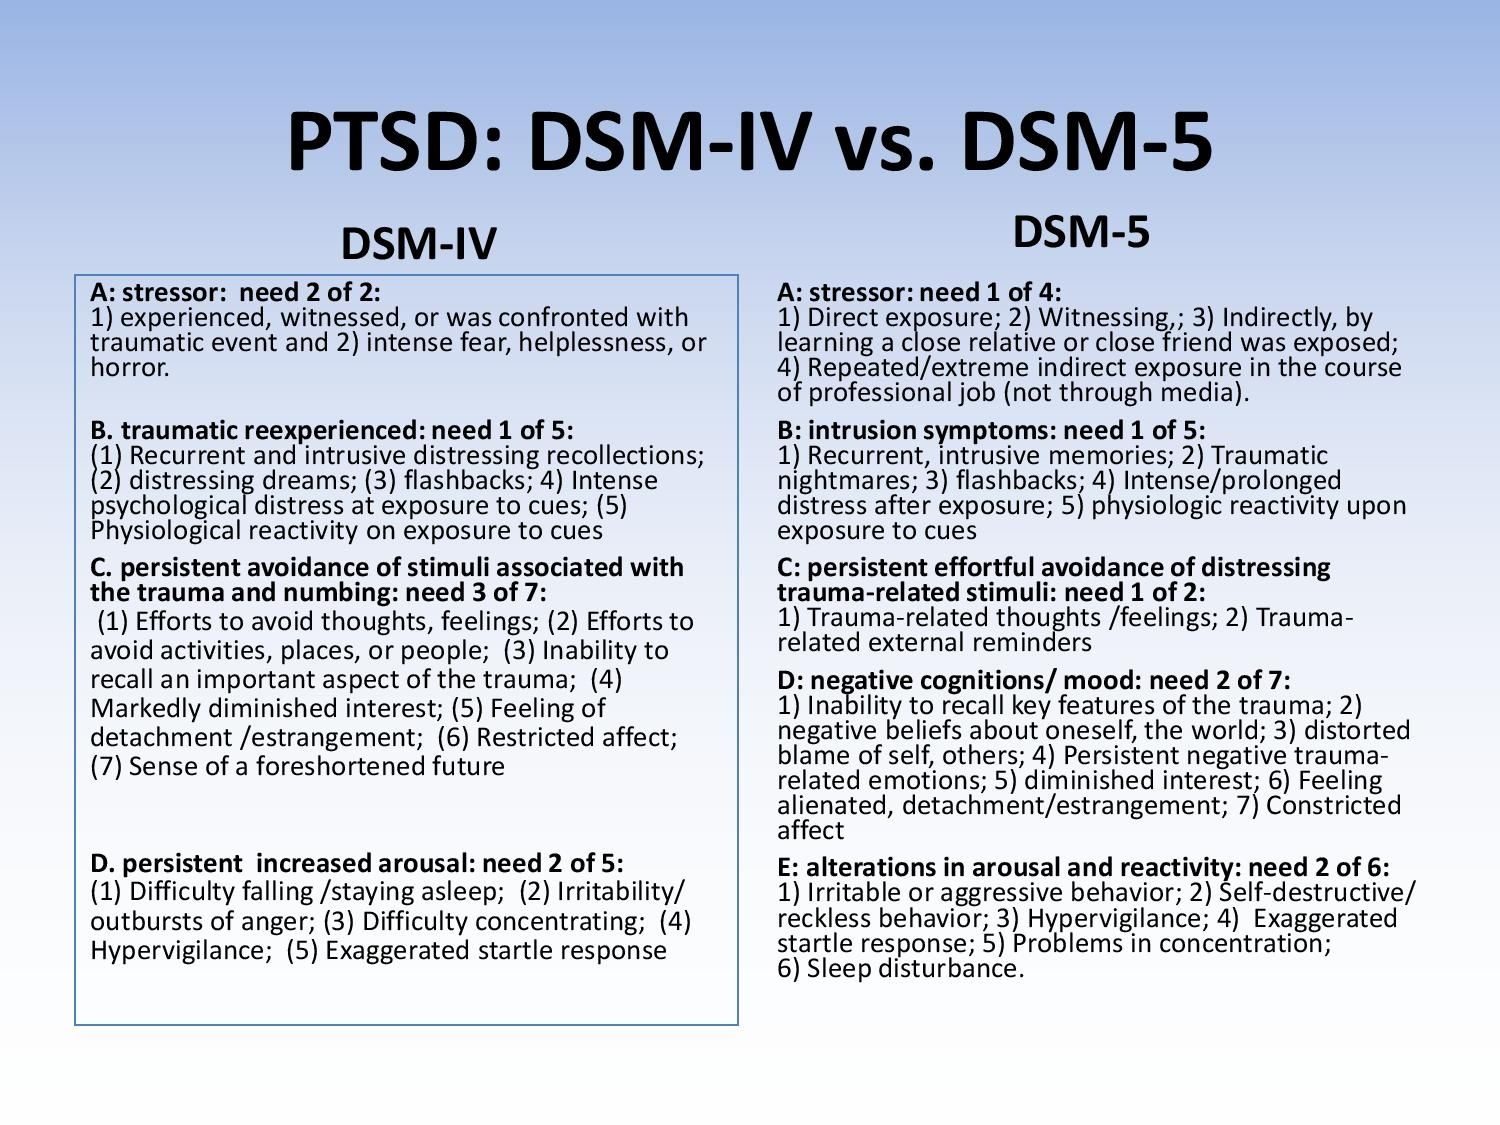 dsm-iv case studies for students Dsm-5 ptsd criteria questioned in study to ptsd diagnostic criteria in dsm-iv-tr extensive revision than was the case for most other conditions.